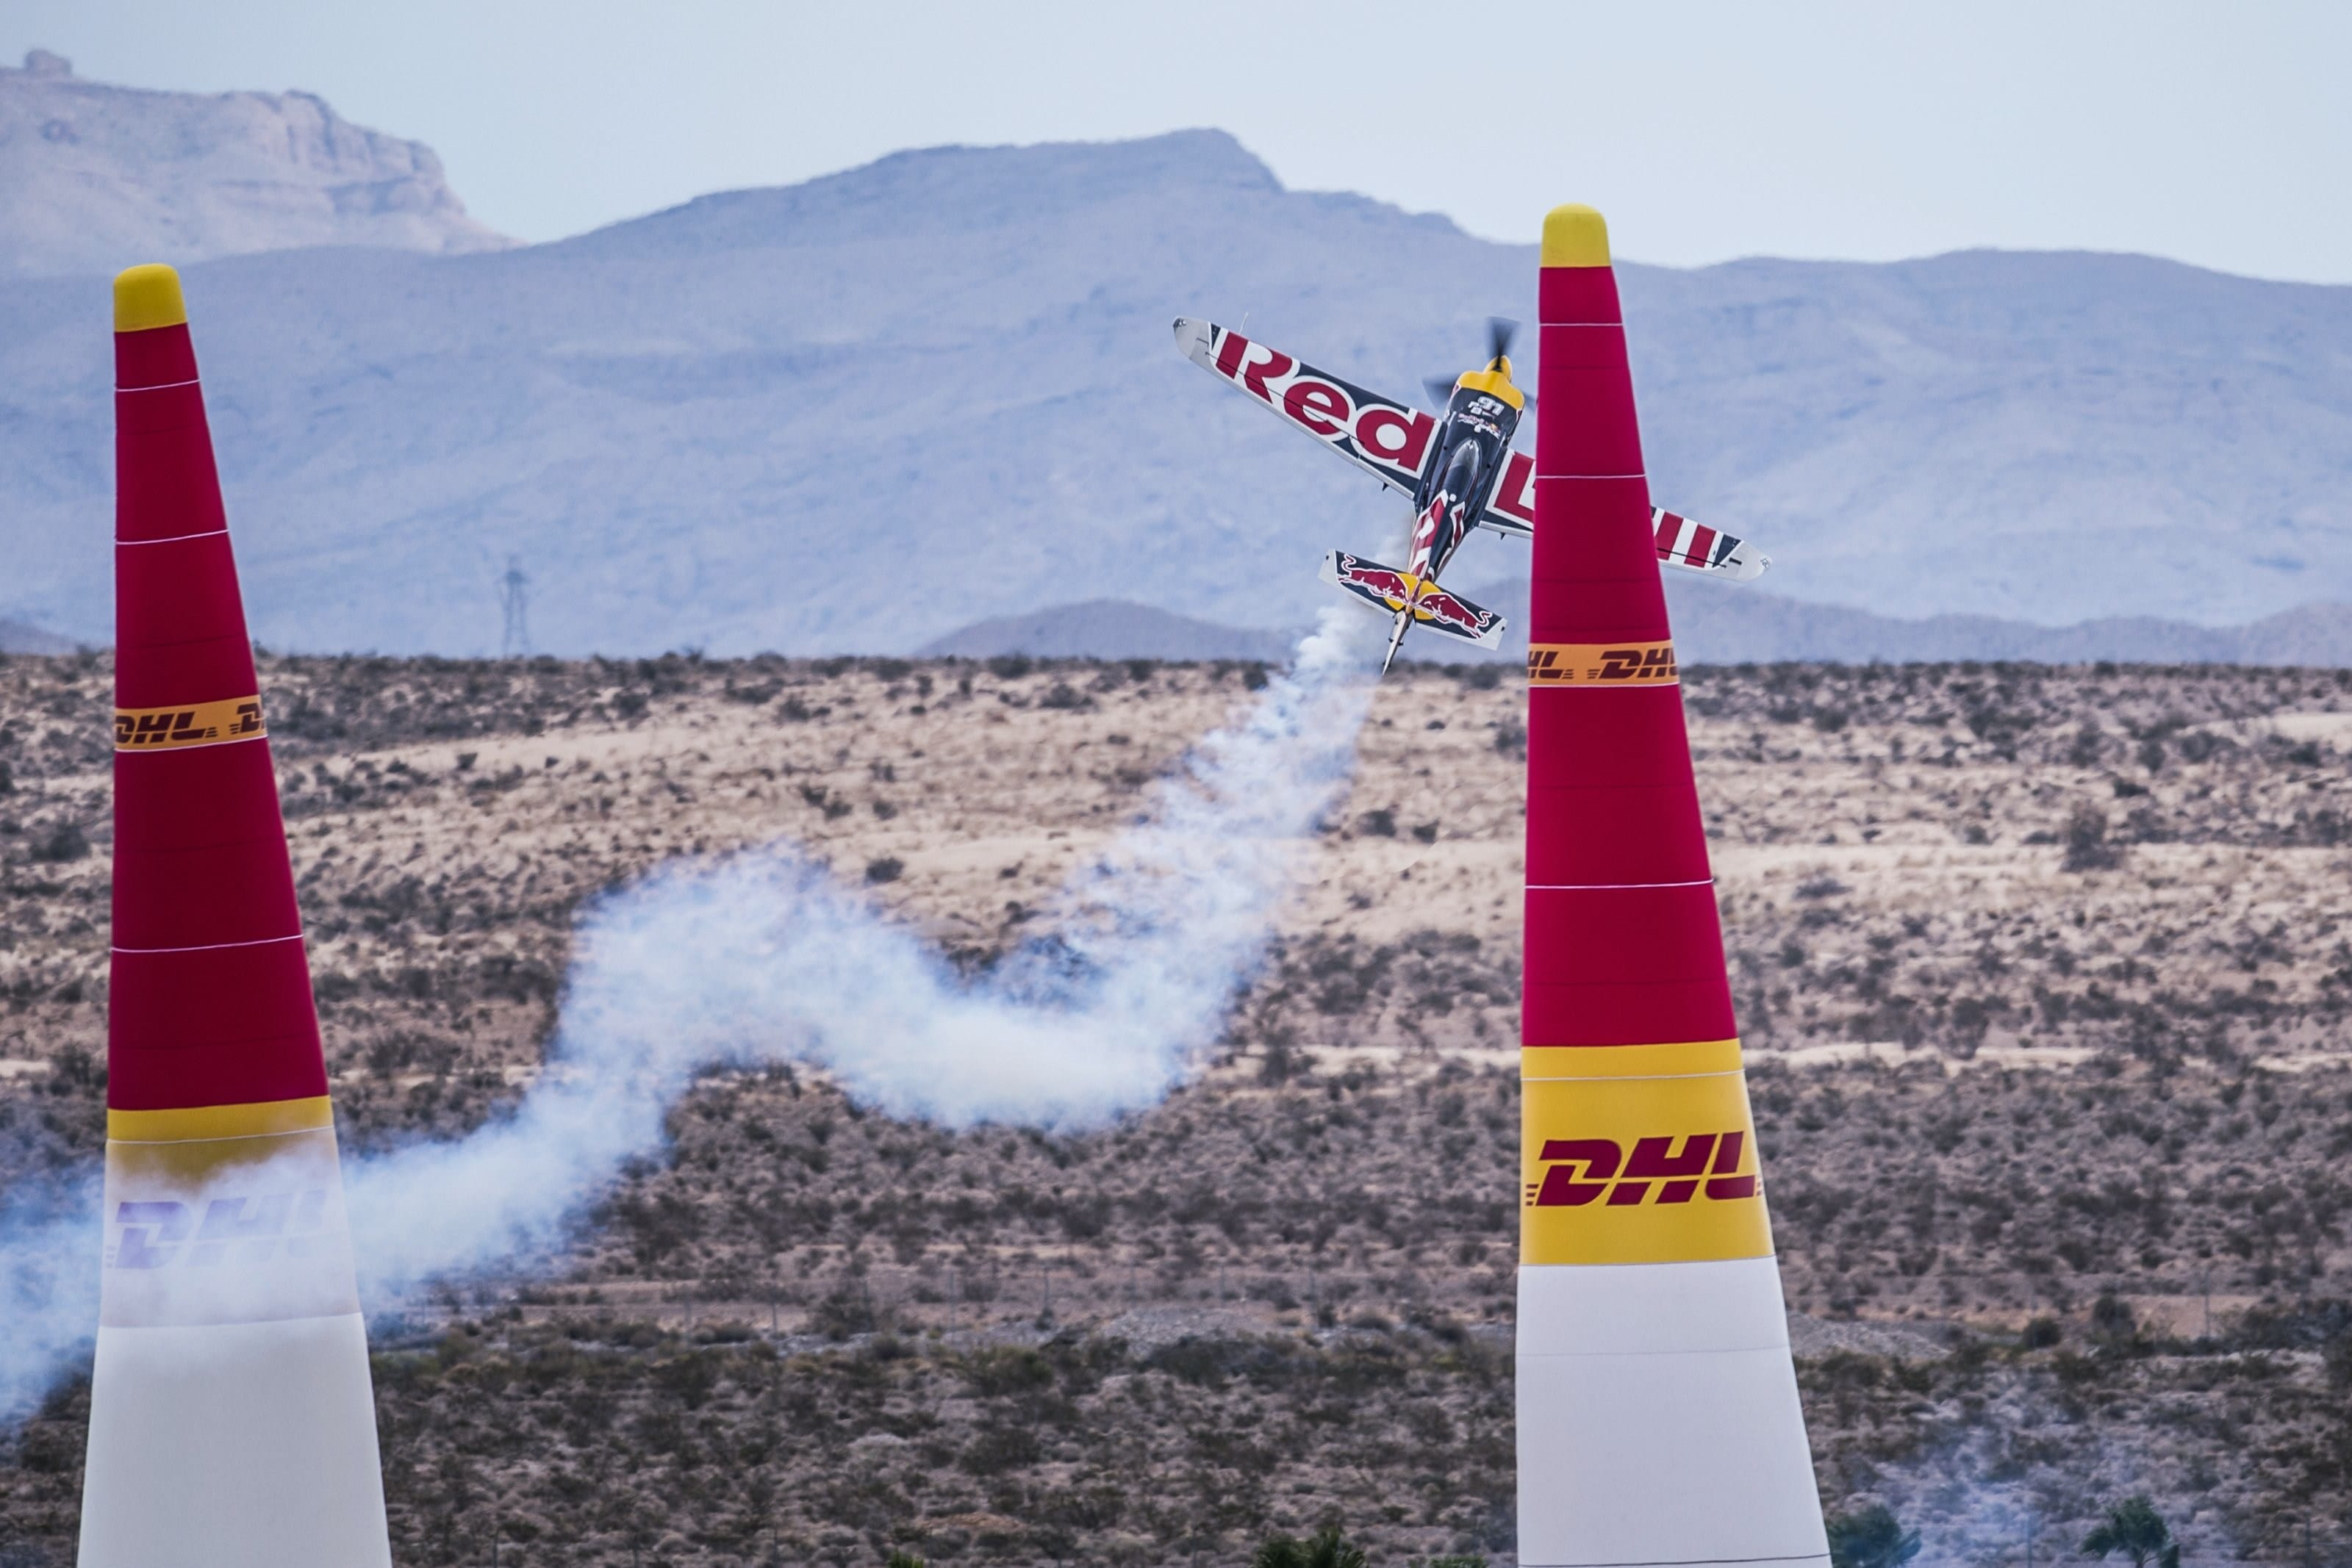 Bonhomme wins third red bull title - Red bull content pool ...